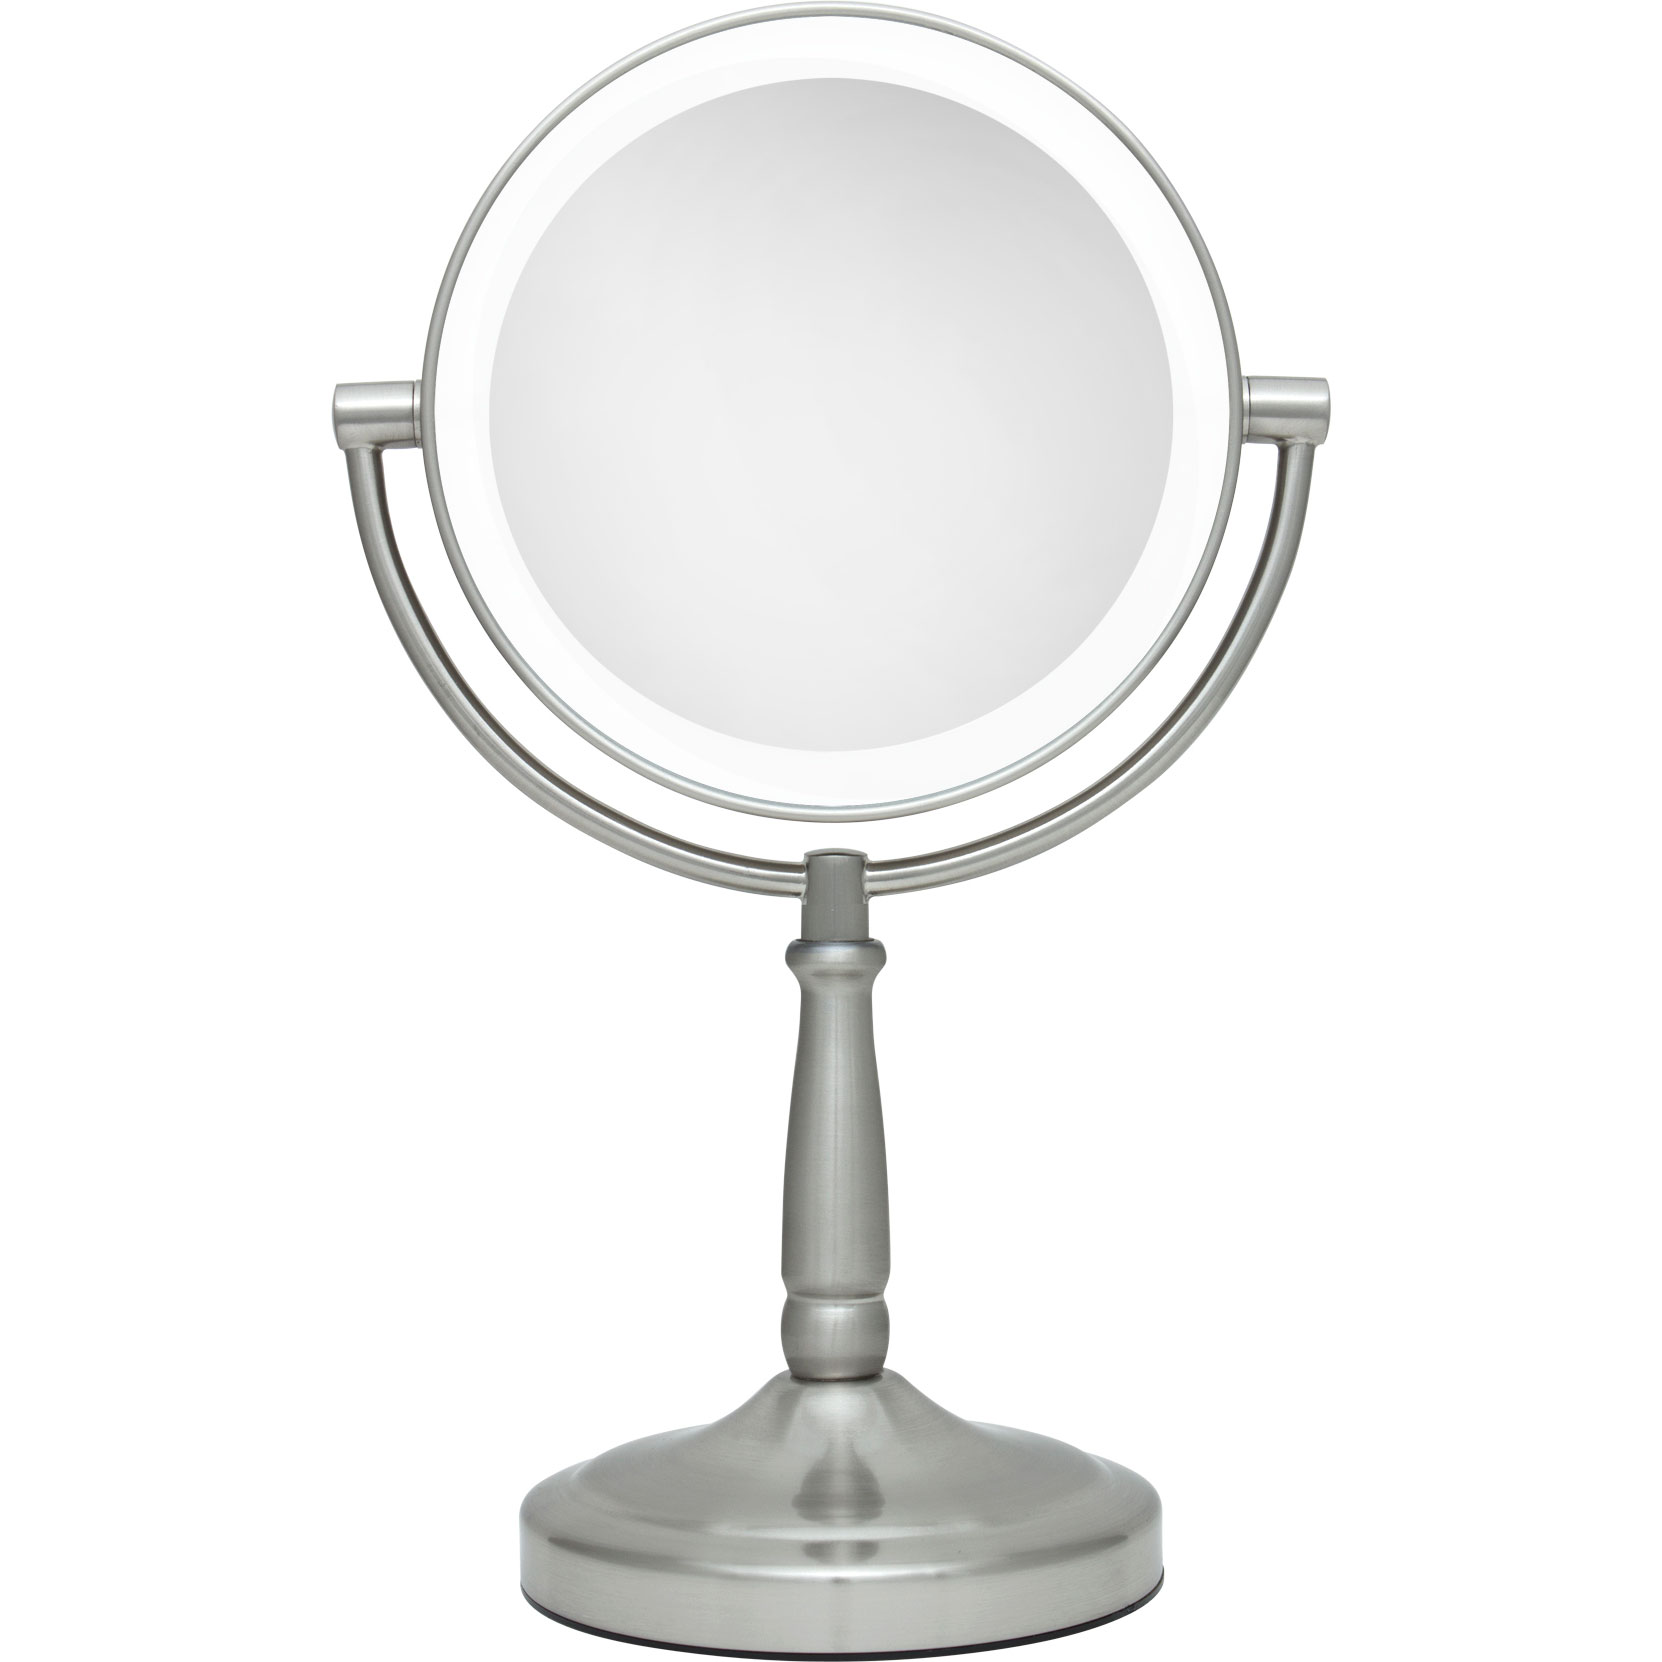 Vanity Mirror With Lights White : 5x/1x Cordless Dual Sided LED Light Vanity Mirror by Zadro LEDV45